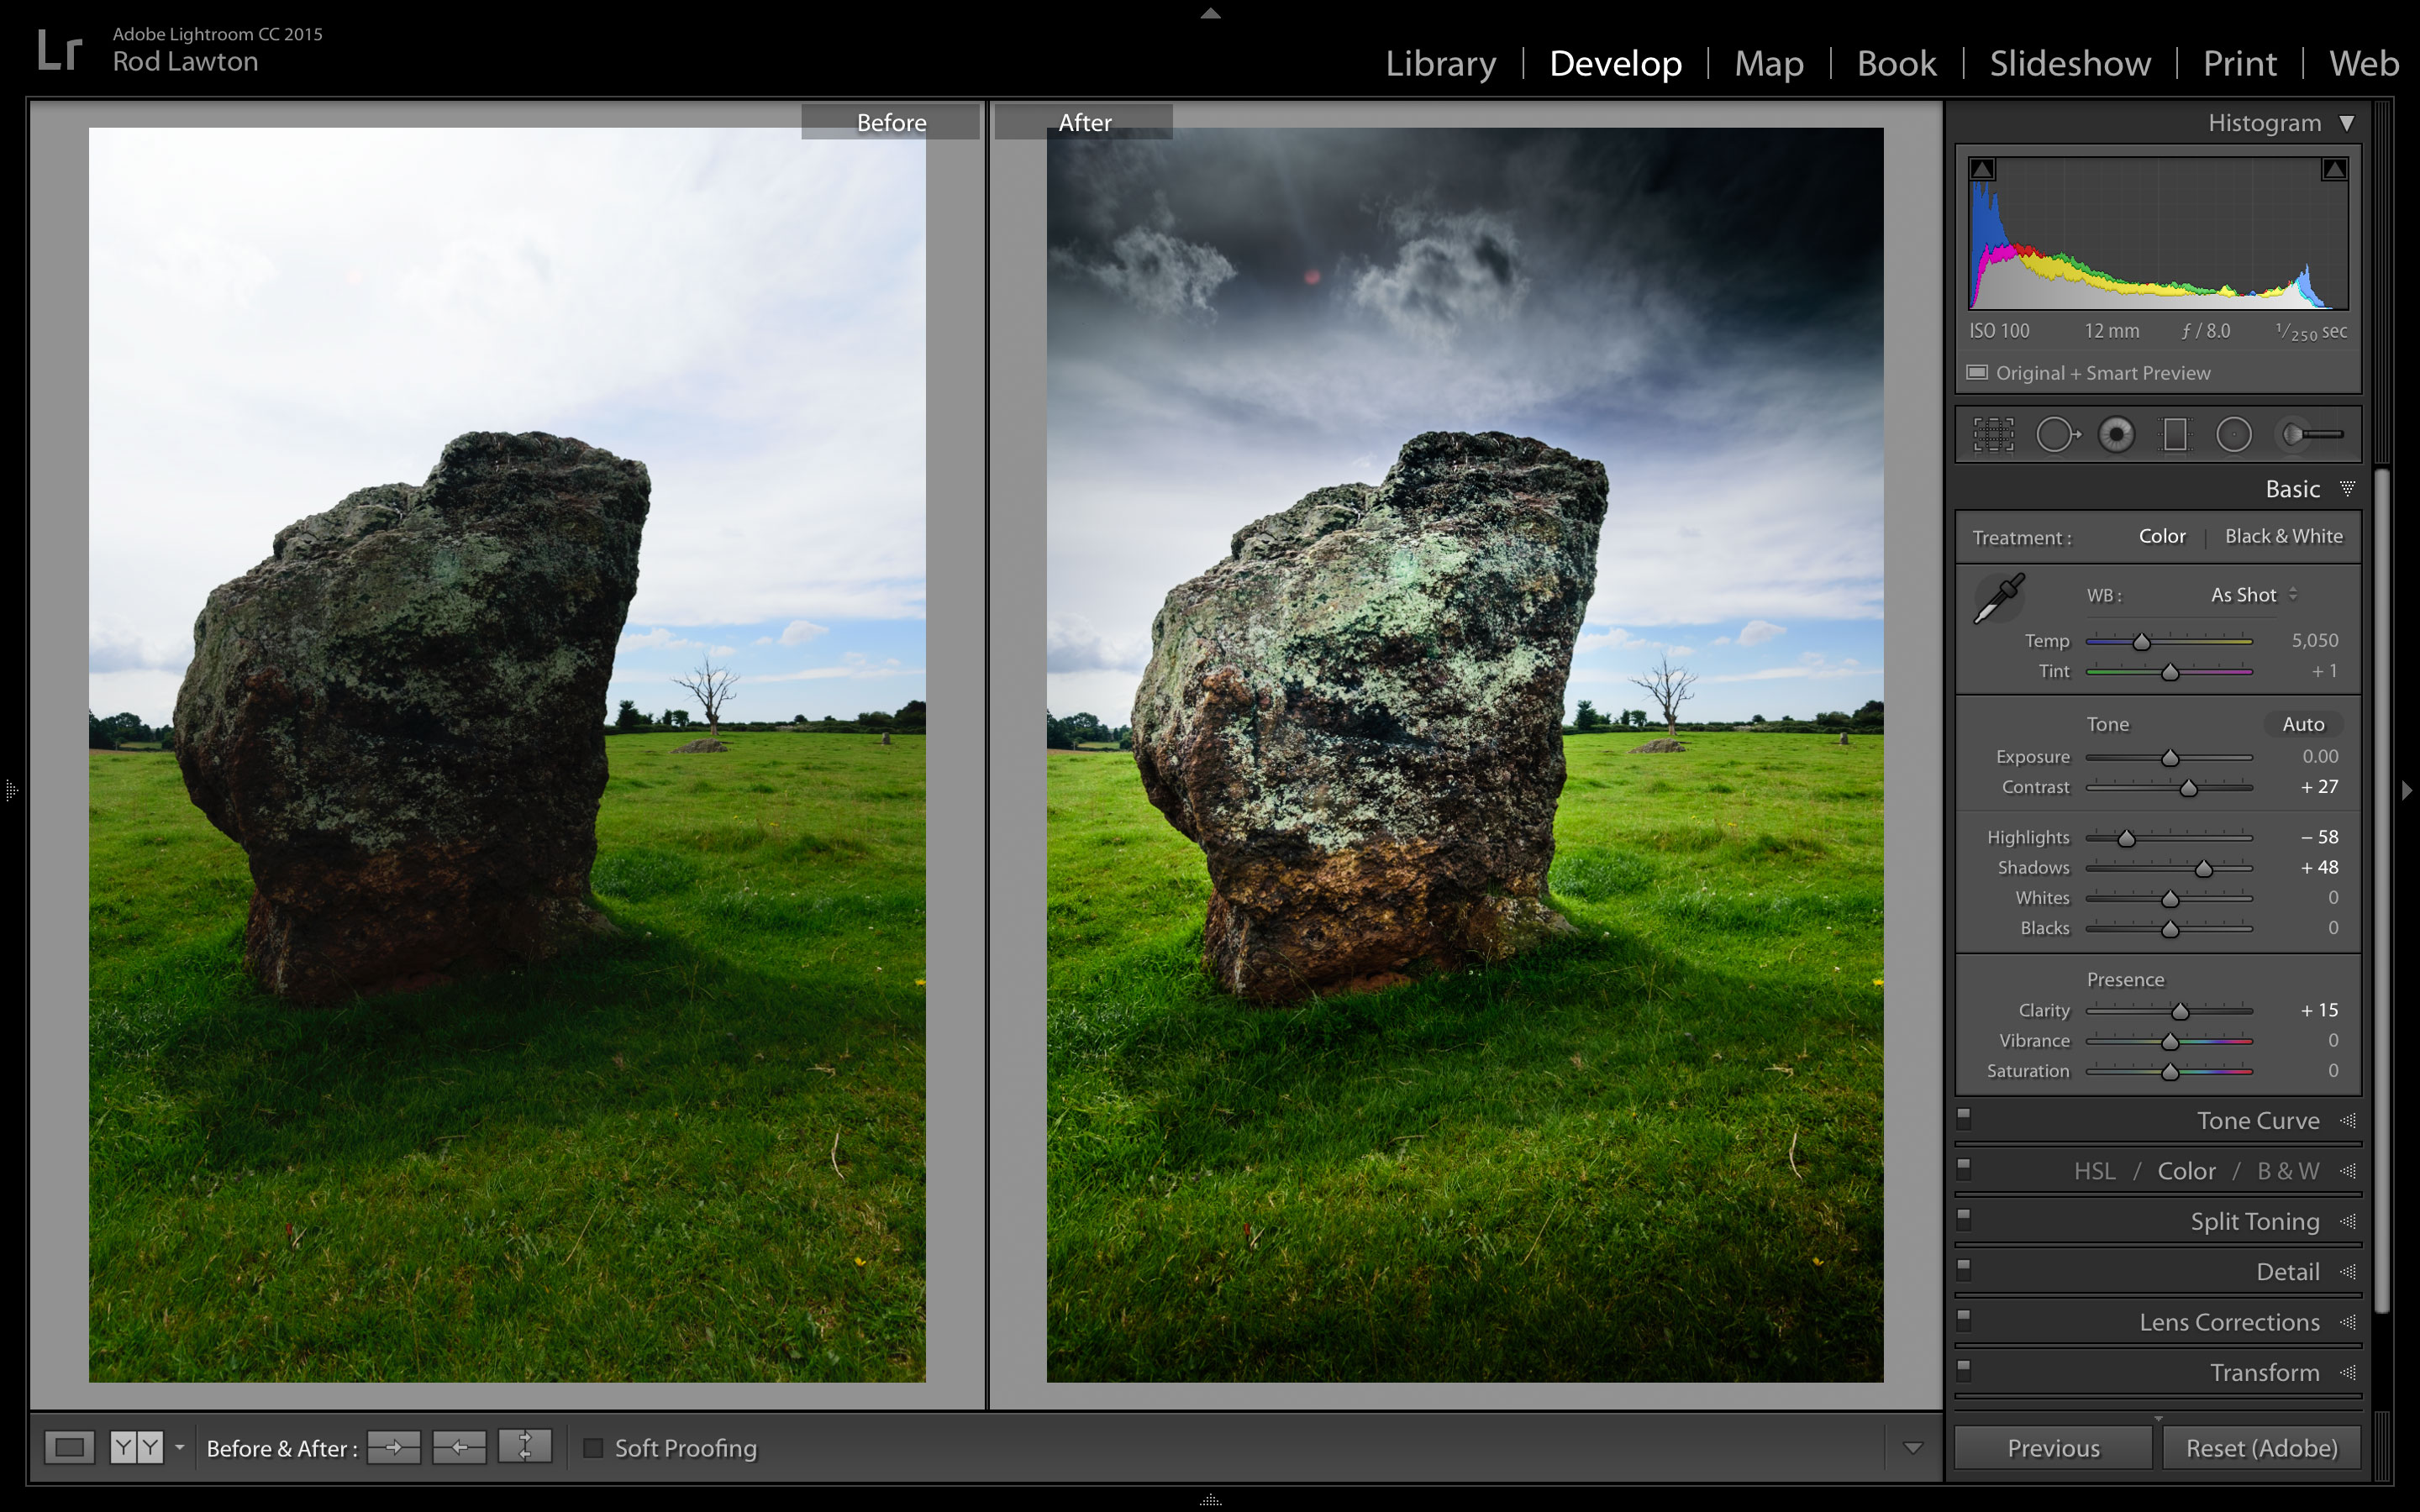 Adobe Lightroom CC review